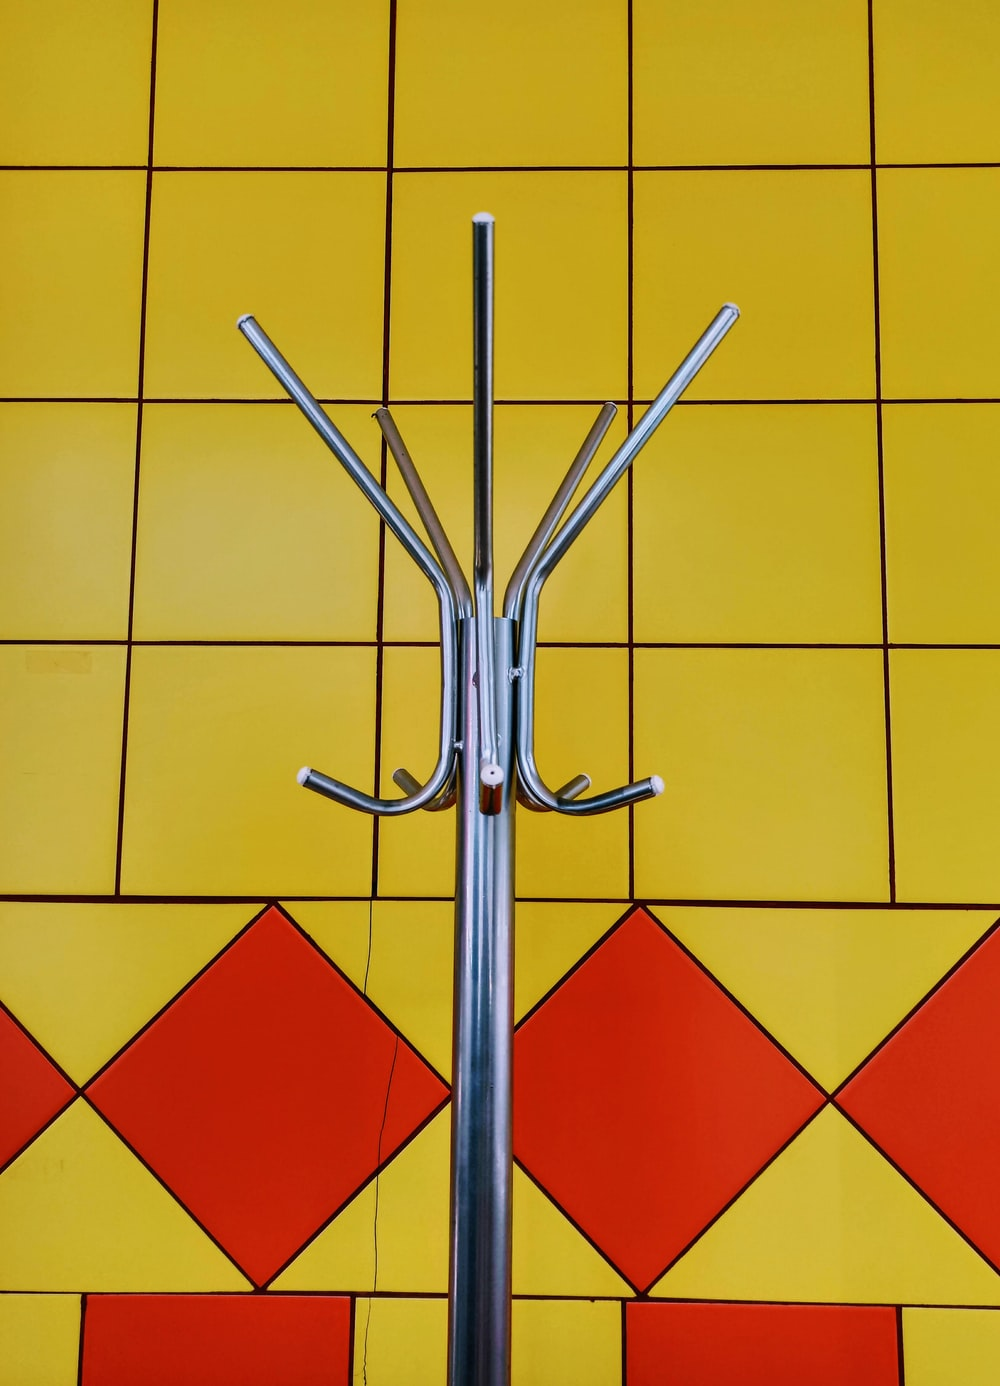 stainless steel clothes pin on white and red checkered surface